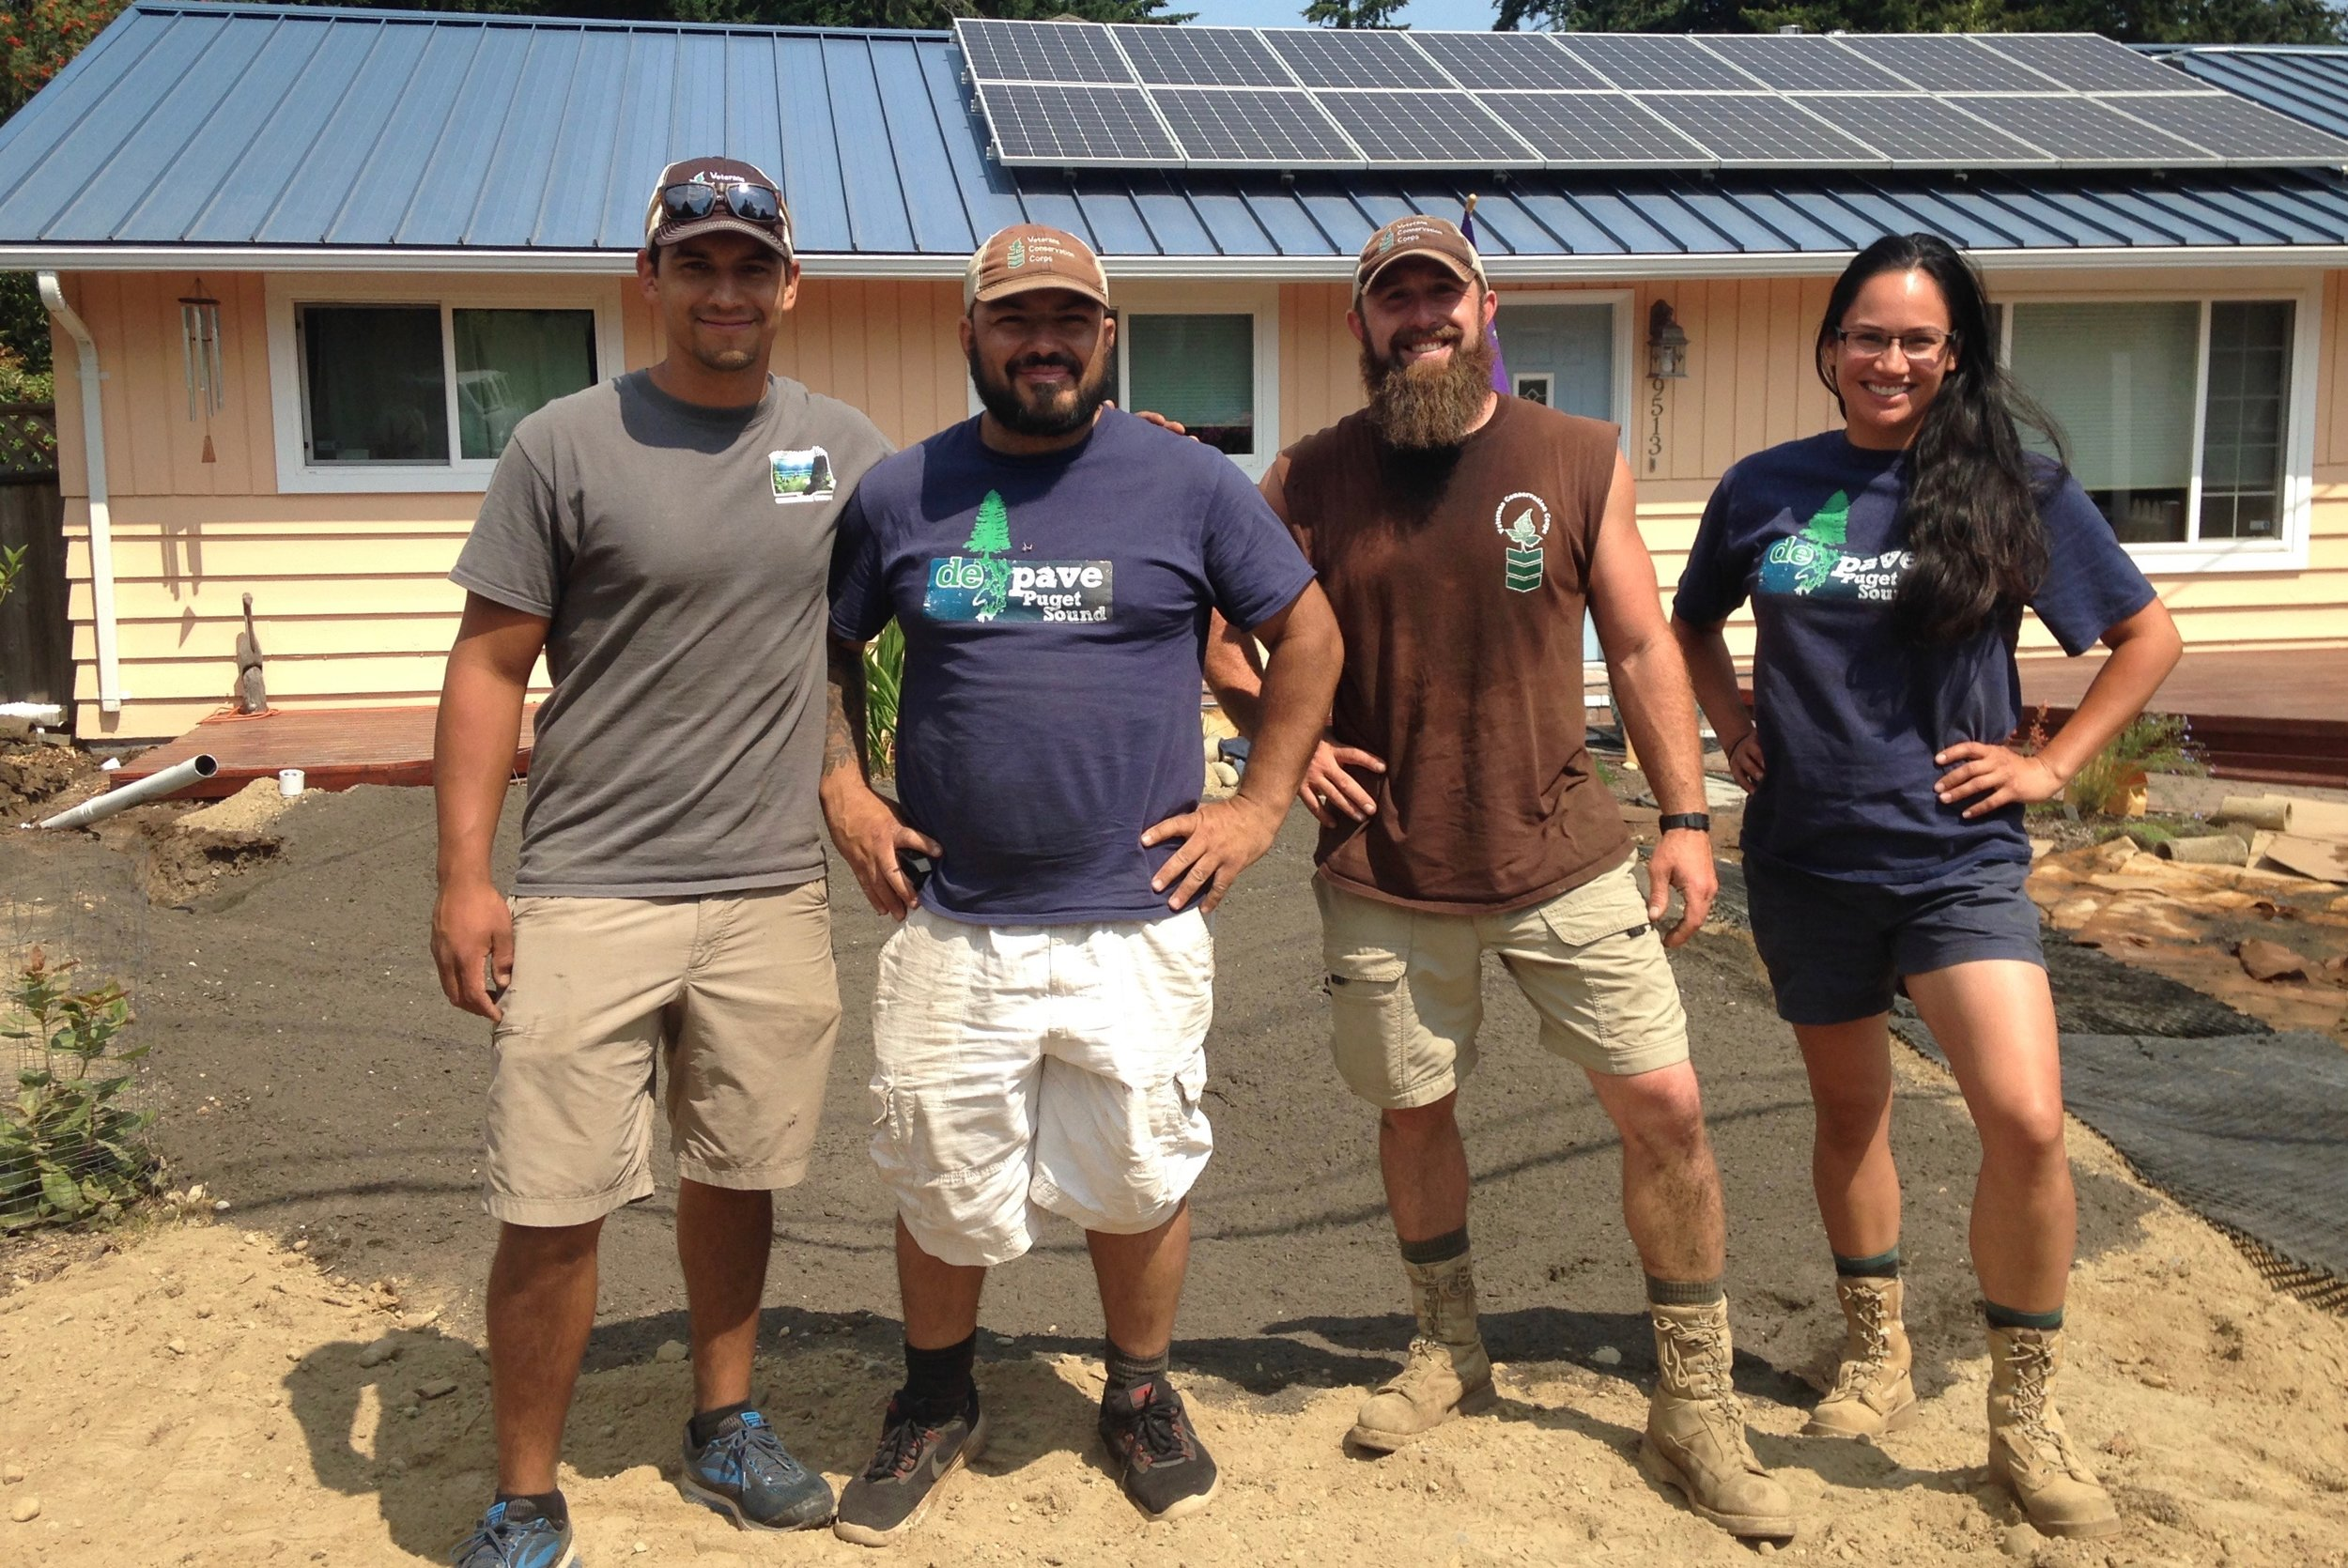 Cameron Coronado (Vet Crew Program Manager), Chris Rodriguez (Vet Crew Supervisor), Taylor Pesce (former Vet Crew Member), and Sara Rocero (former Vet Crew Member and active Americorps Restoration Assistant) at a homeowner's property in Edmonds during rain garden construction.